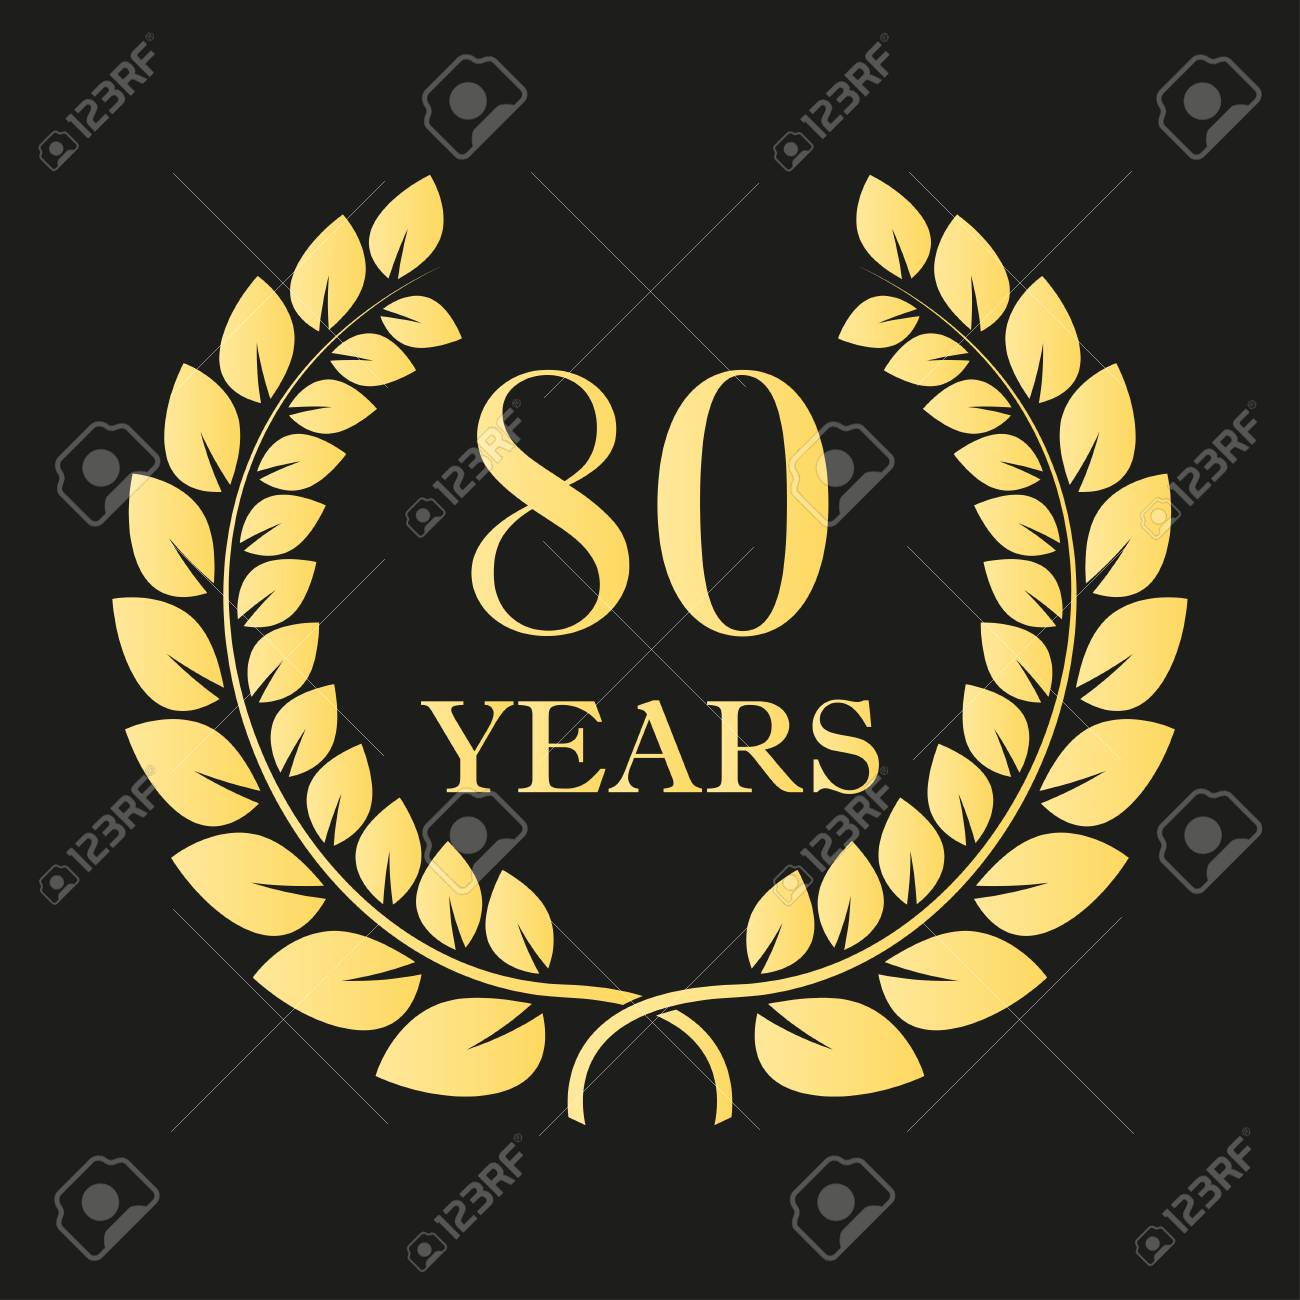 Years Anniversary Laurel Wreath Sign Or Emblem Template For - 80 label template